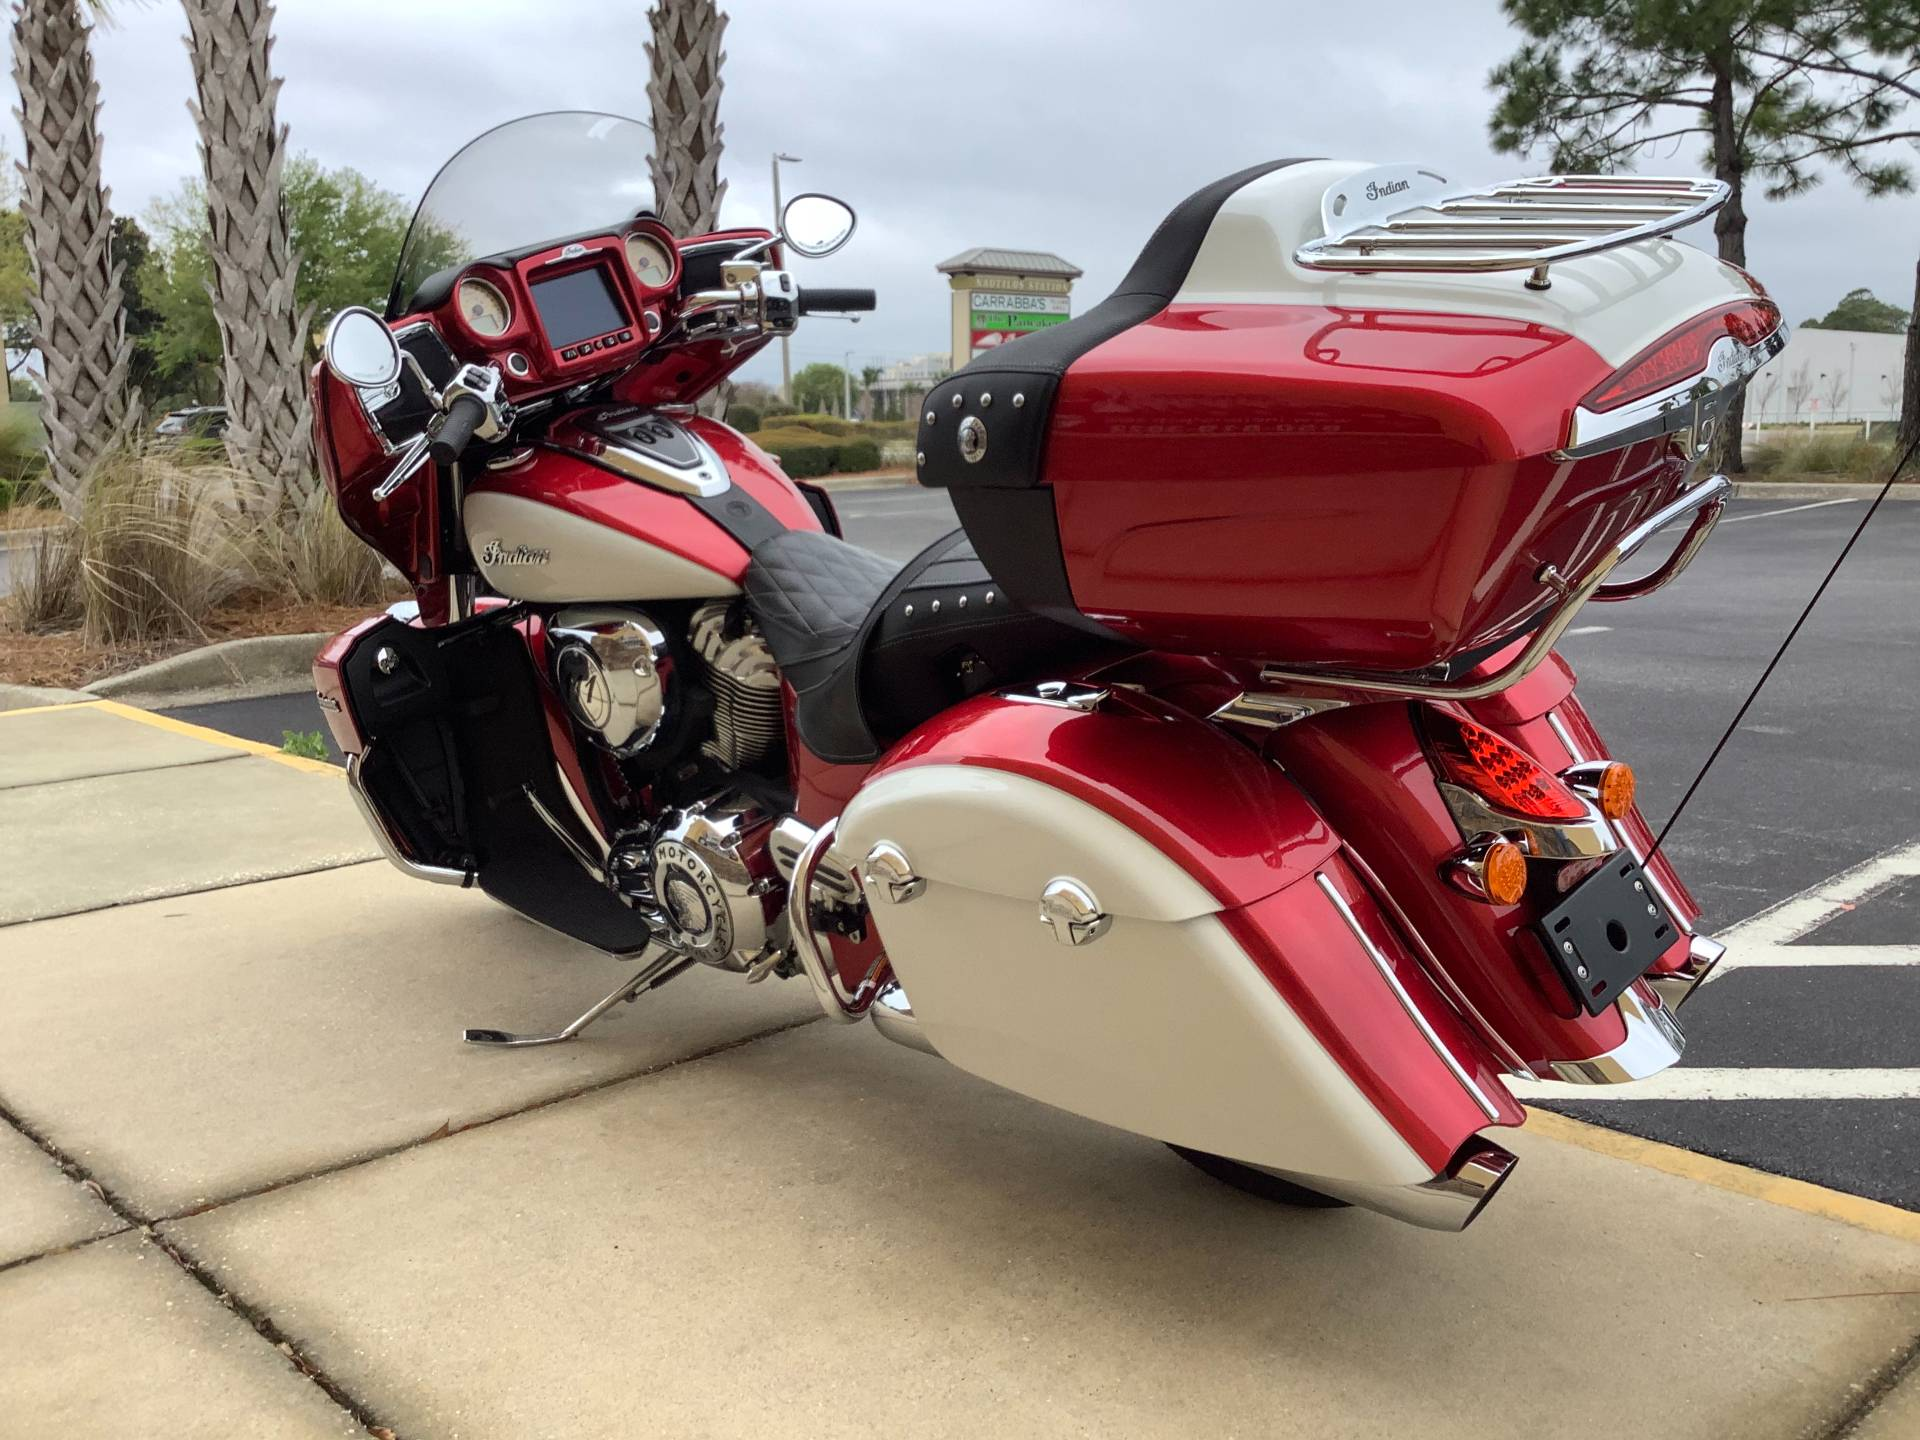 2019 Indian ROADMASTER ICON SERIES in Panama City Beach, Florida - Photo 9